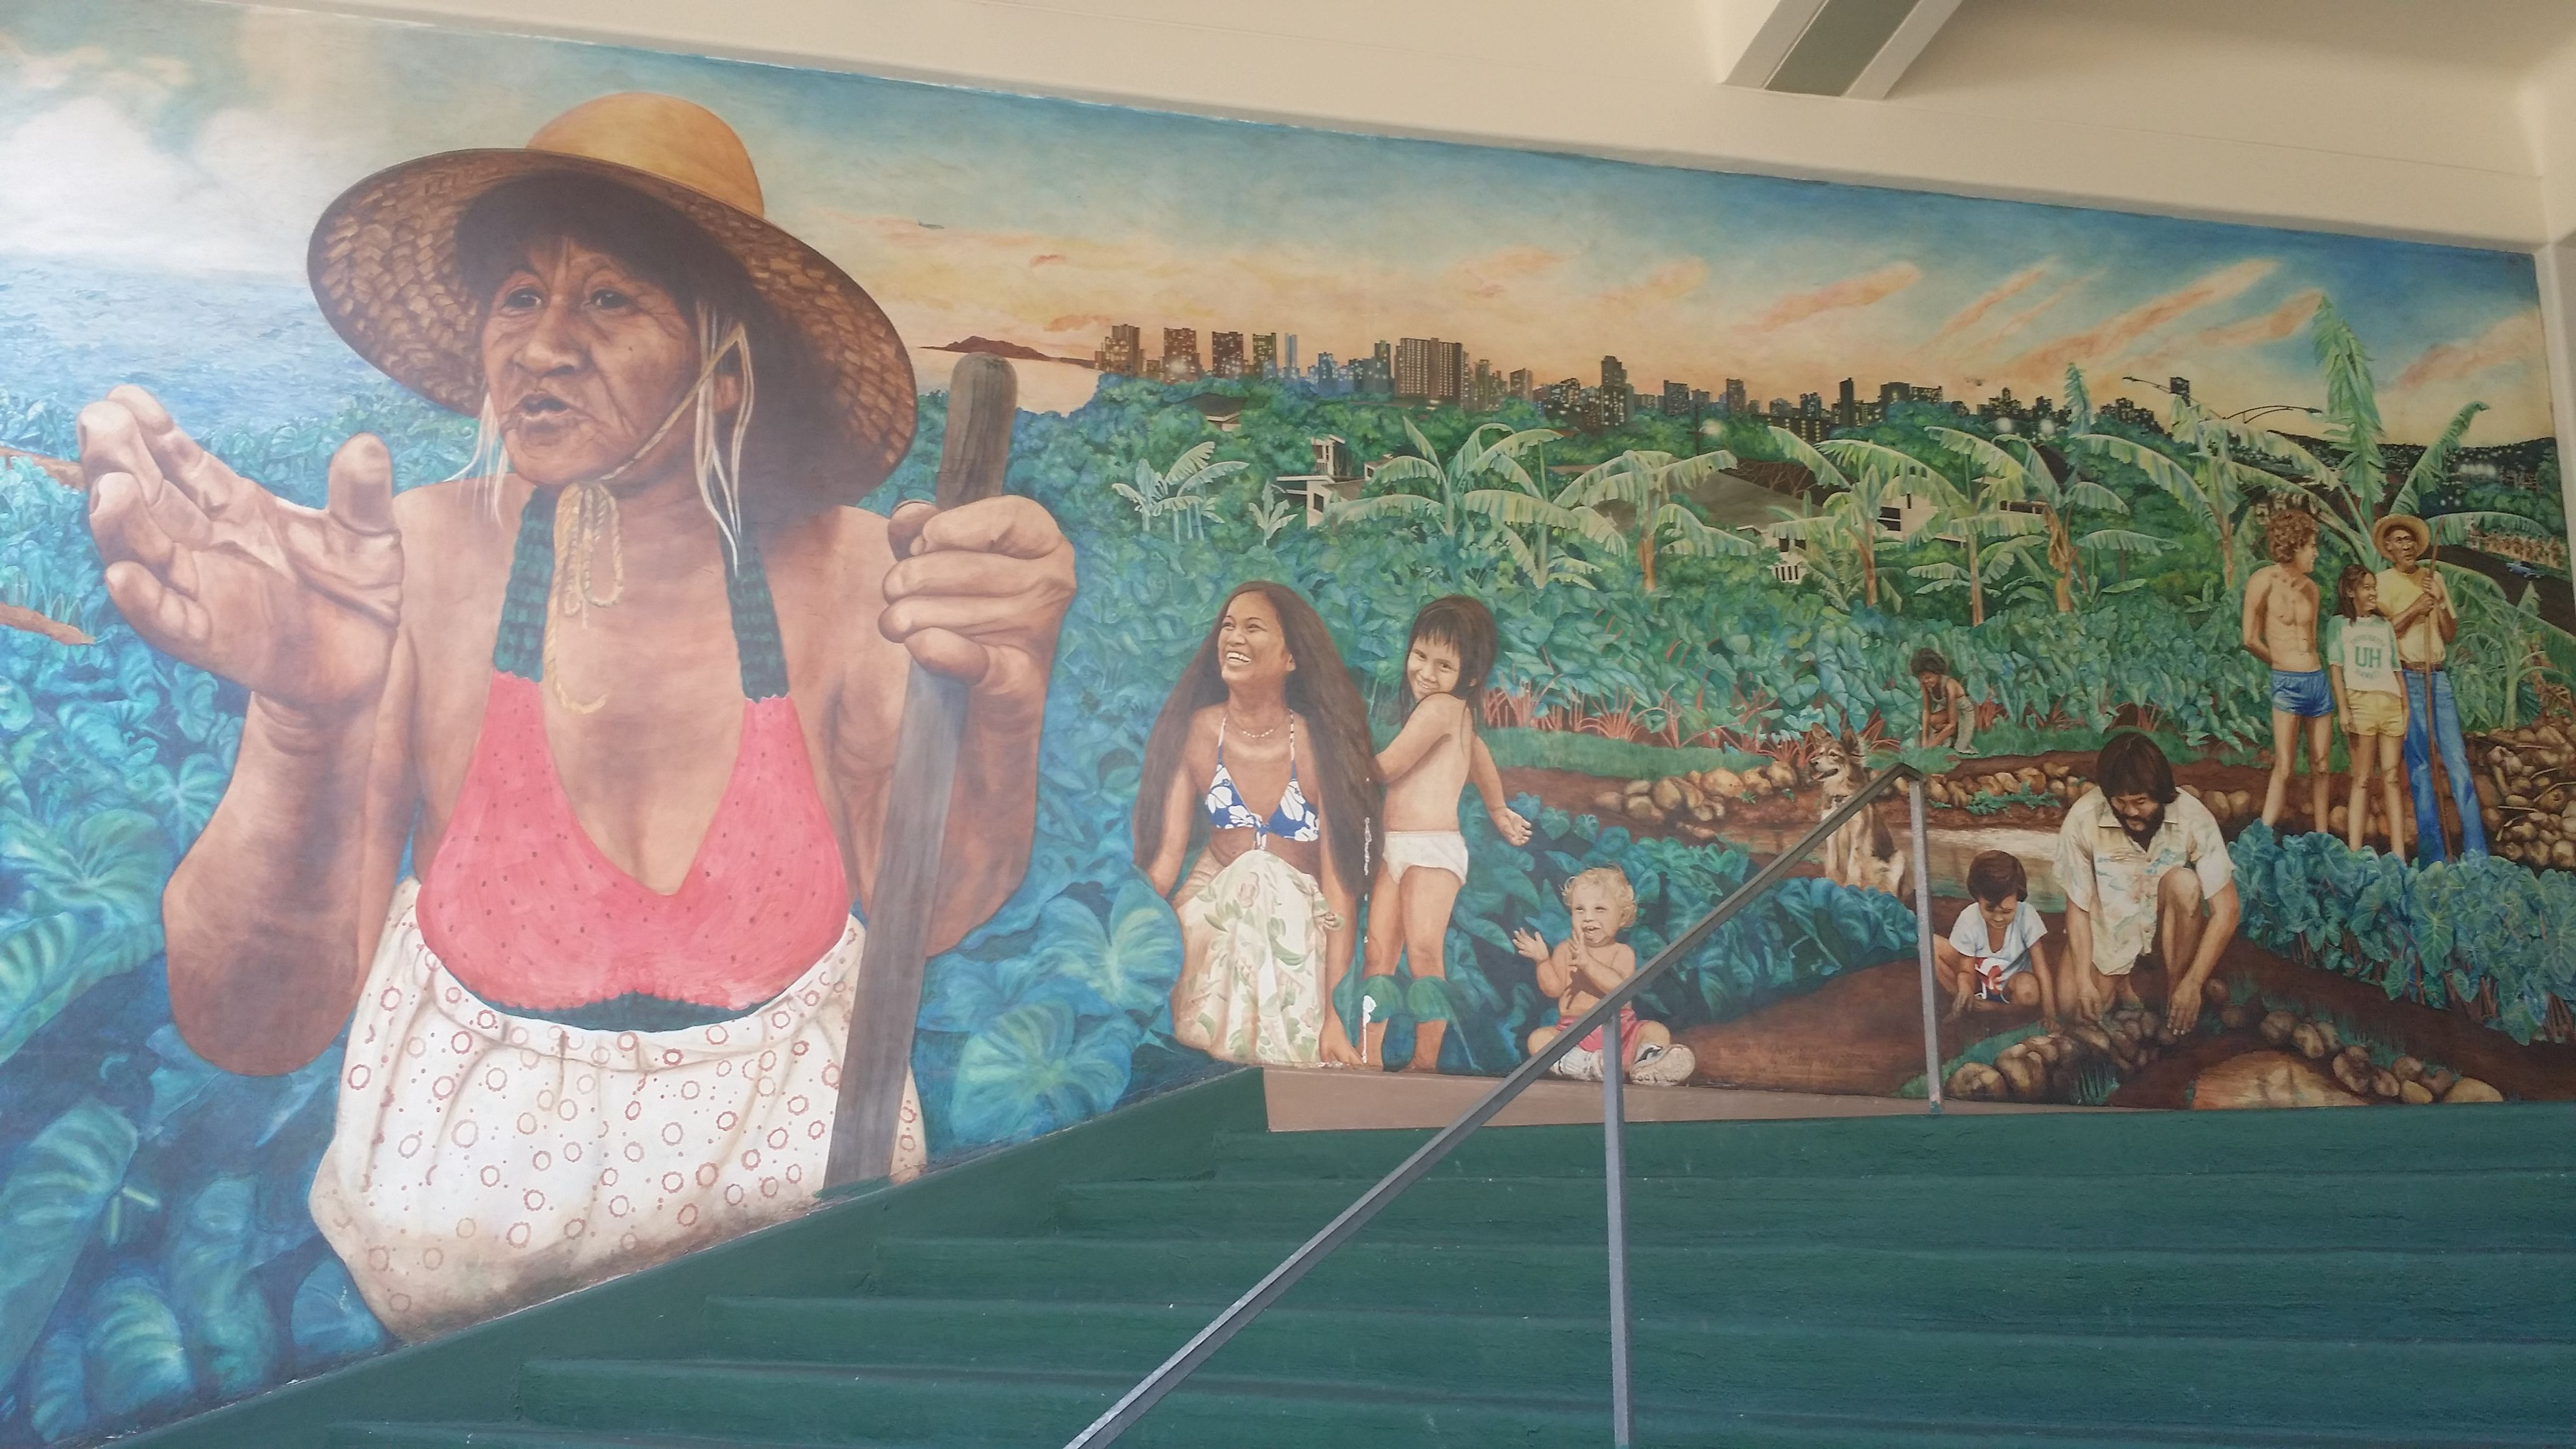 Mural on the steps leading up to campus center at university of mural on the steps leading up to campus center at university of hawaii manoa makemanoayours amipublicfo Image collections